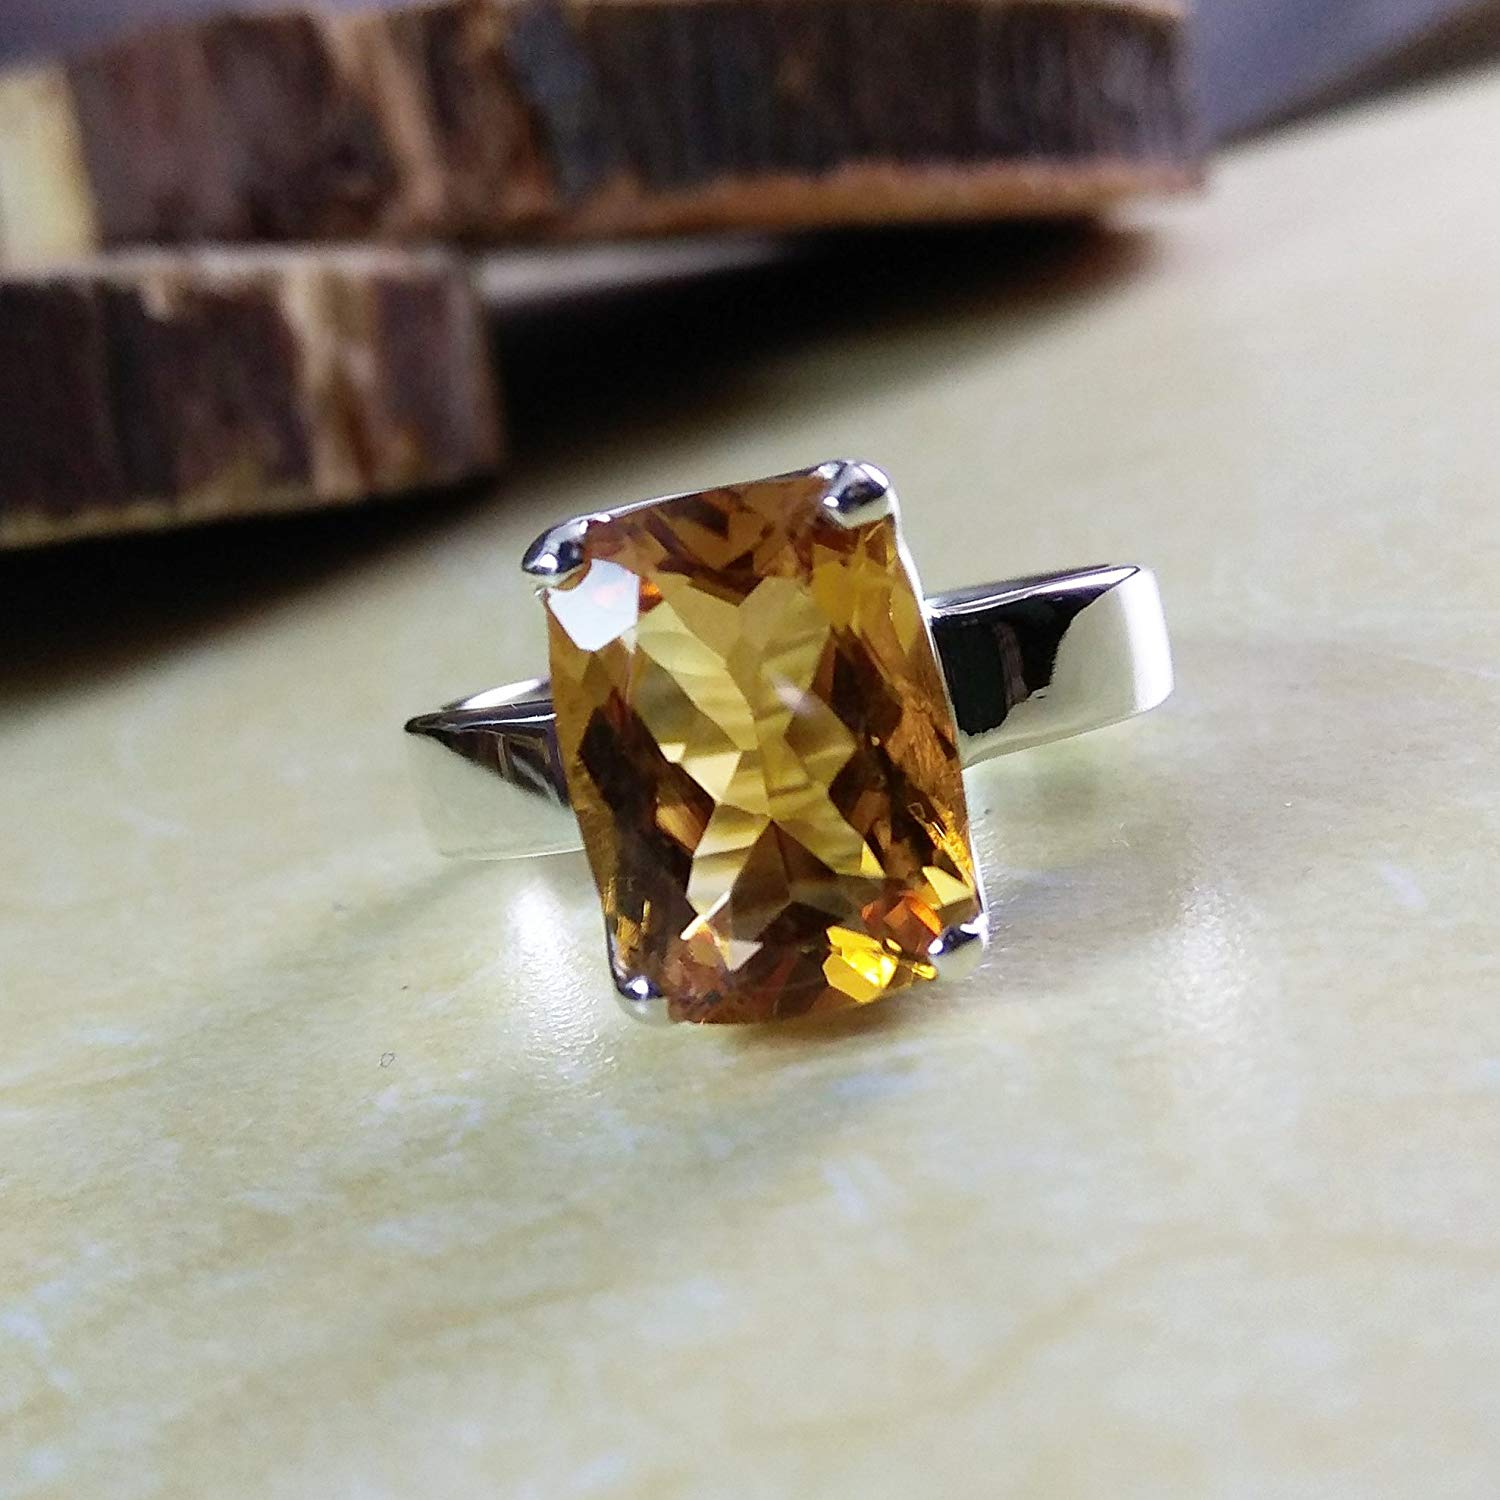 Citrine Engagement Ring, Natural Citrine Ring, Solid 925 Sterling Silver Jewelry, Solitaire Engagement Ring, Gemstone Engagement Ring, November Birthstone, Healing Gemstone Ring, Minimalist Jewelry